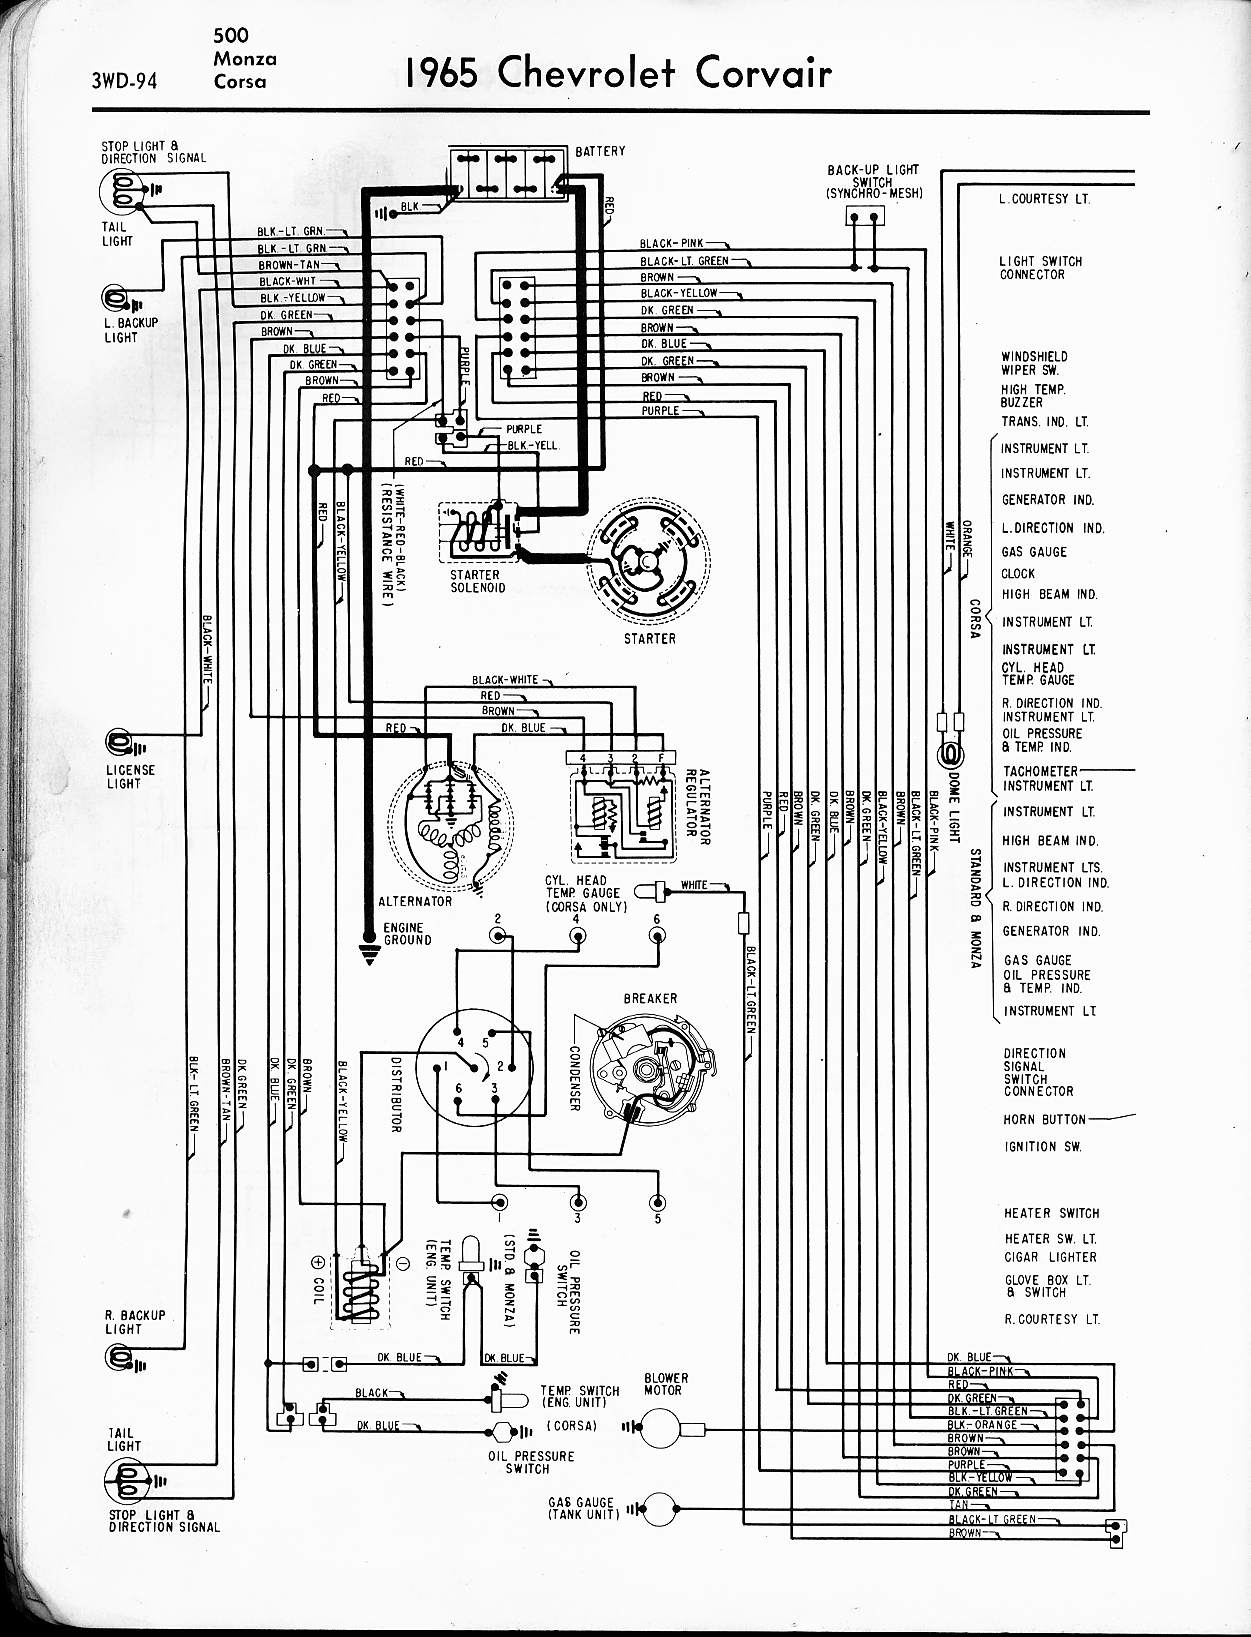 Wiring Diagram For 1966 Chevrolet Corvair Electrical Diagrams Oldsmobile Convertible Schematic Corsa Engine